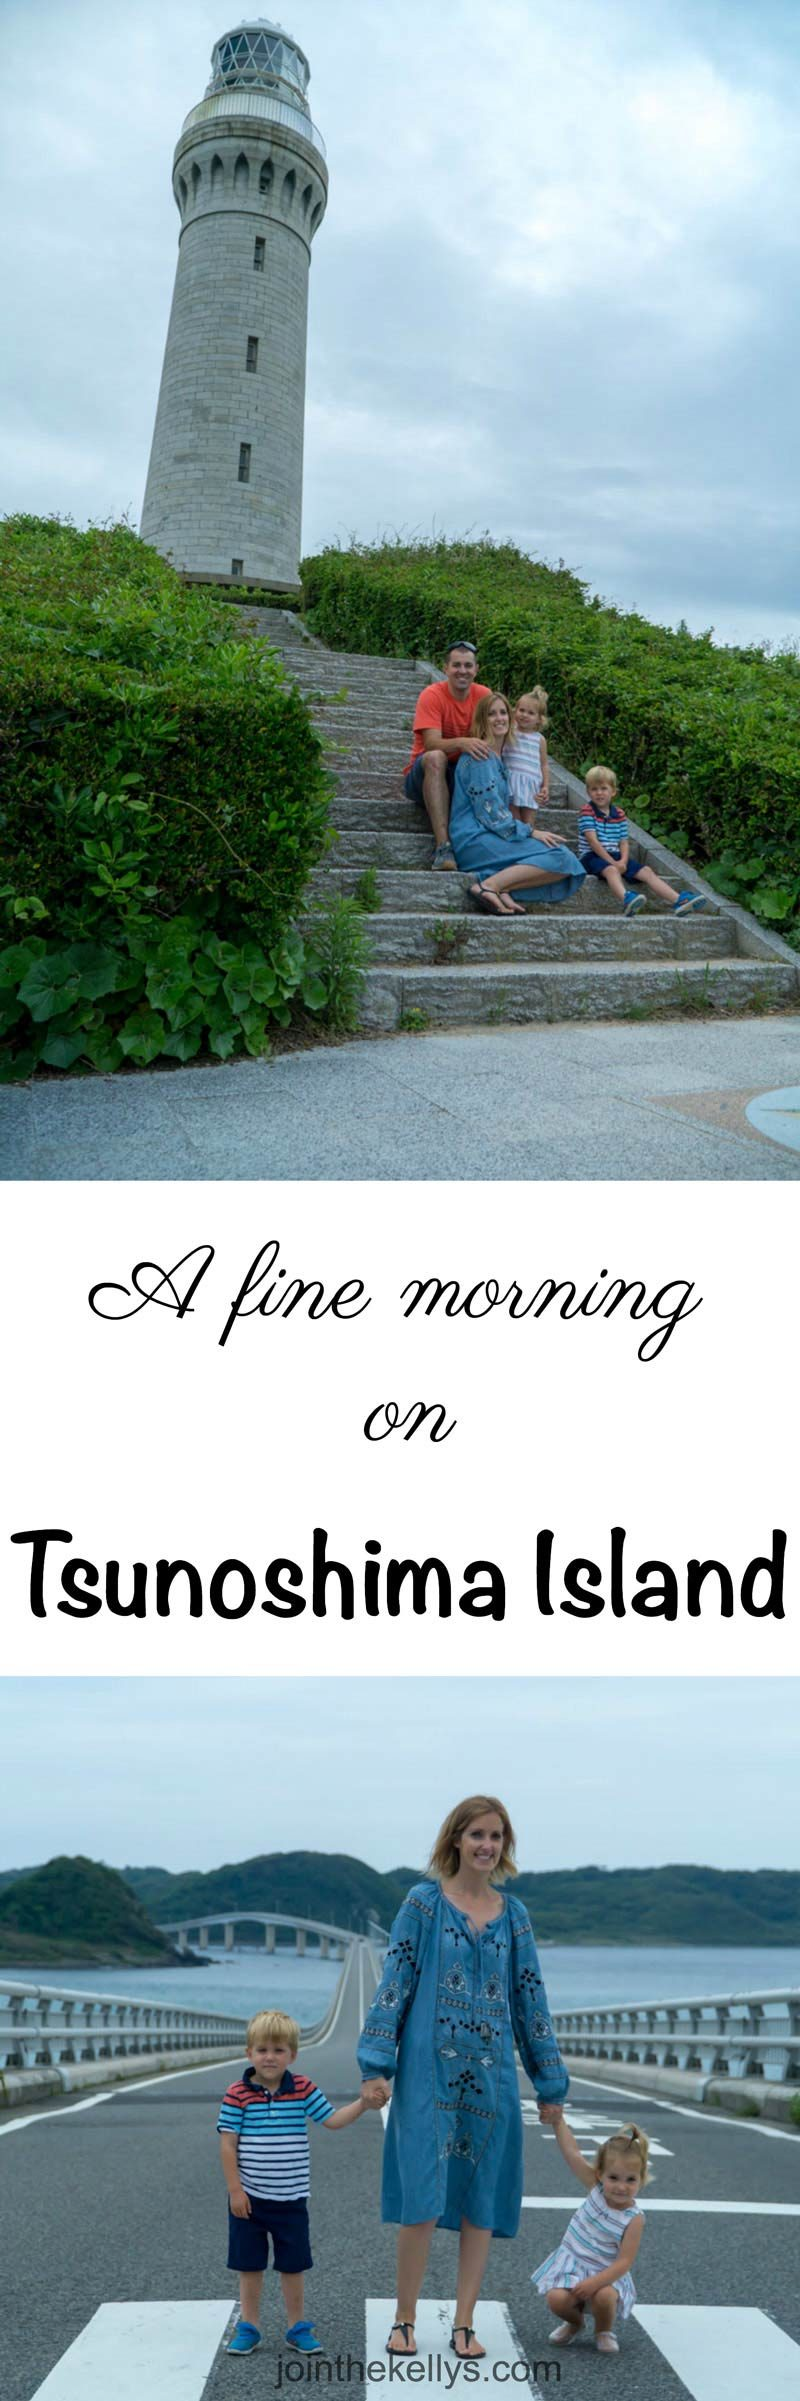 A fine morning on Tsunoshima  island